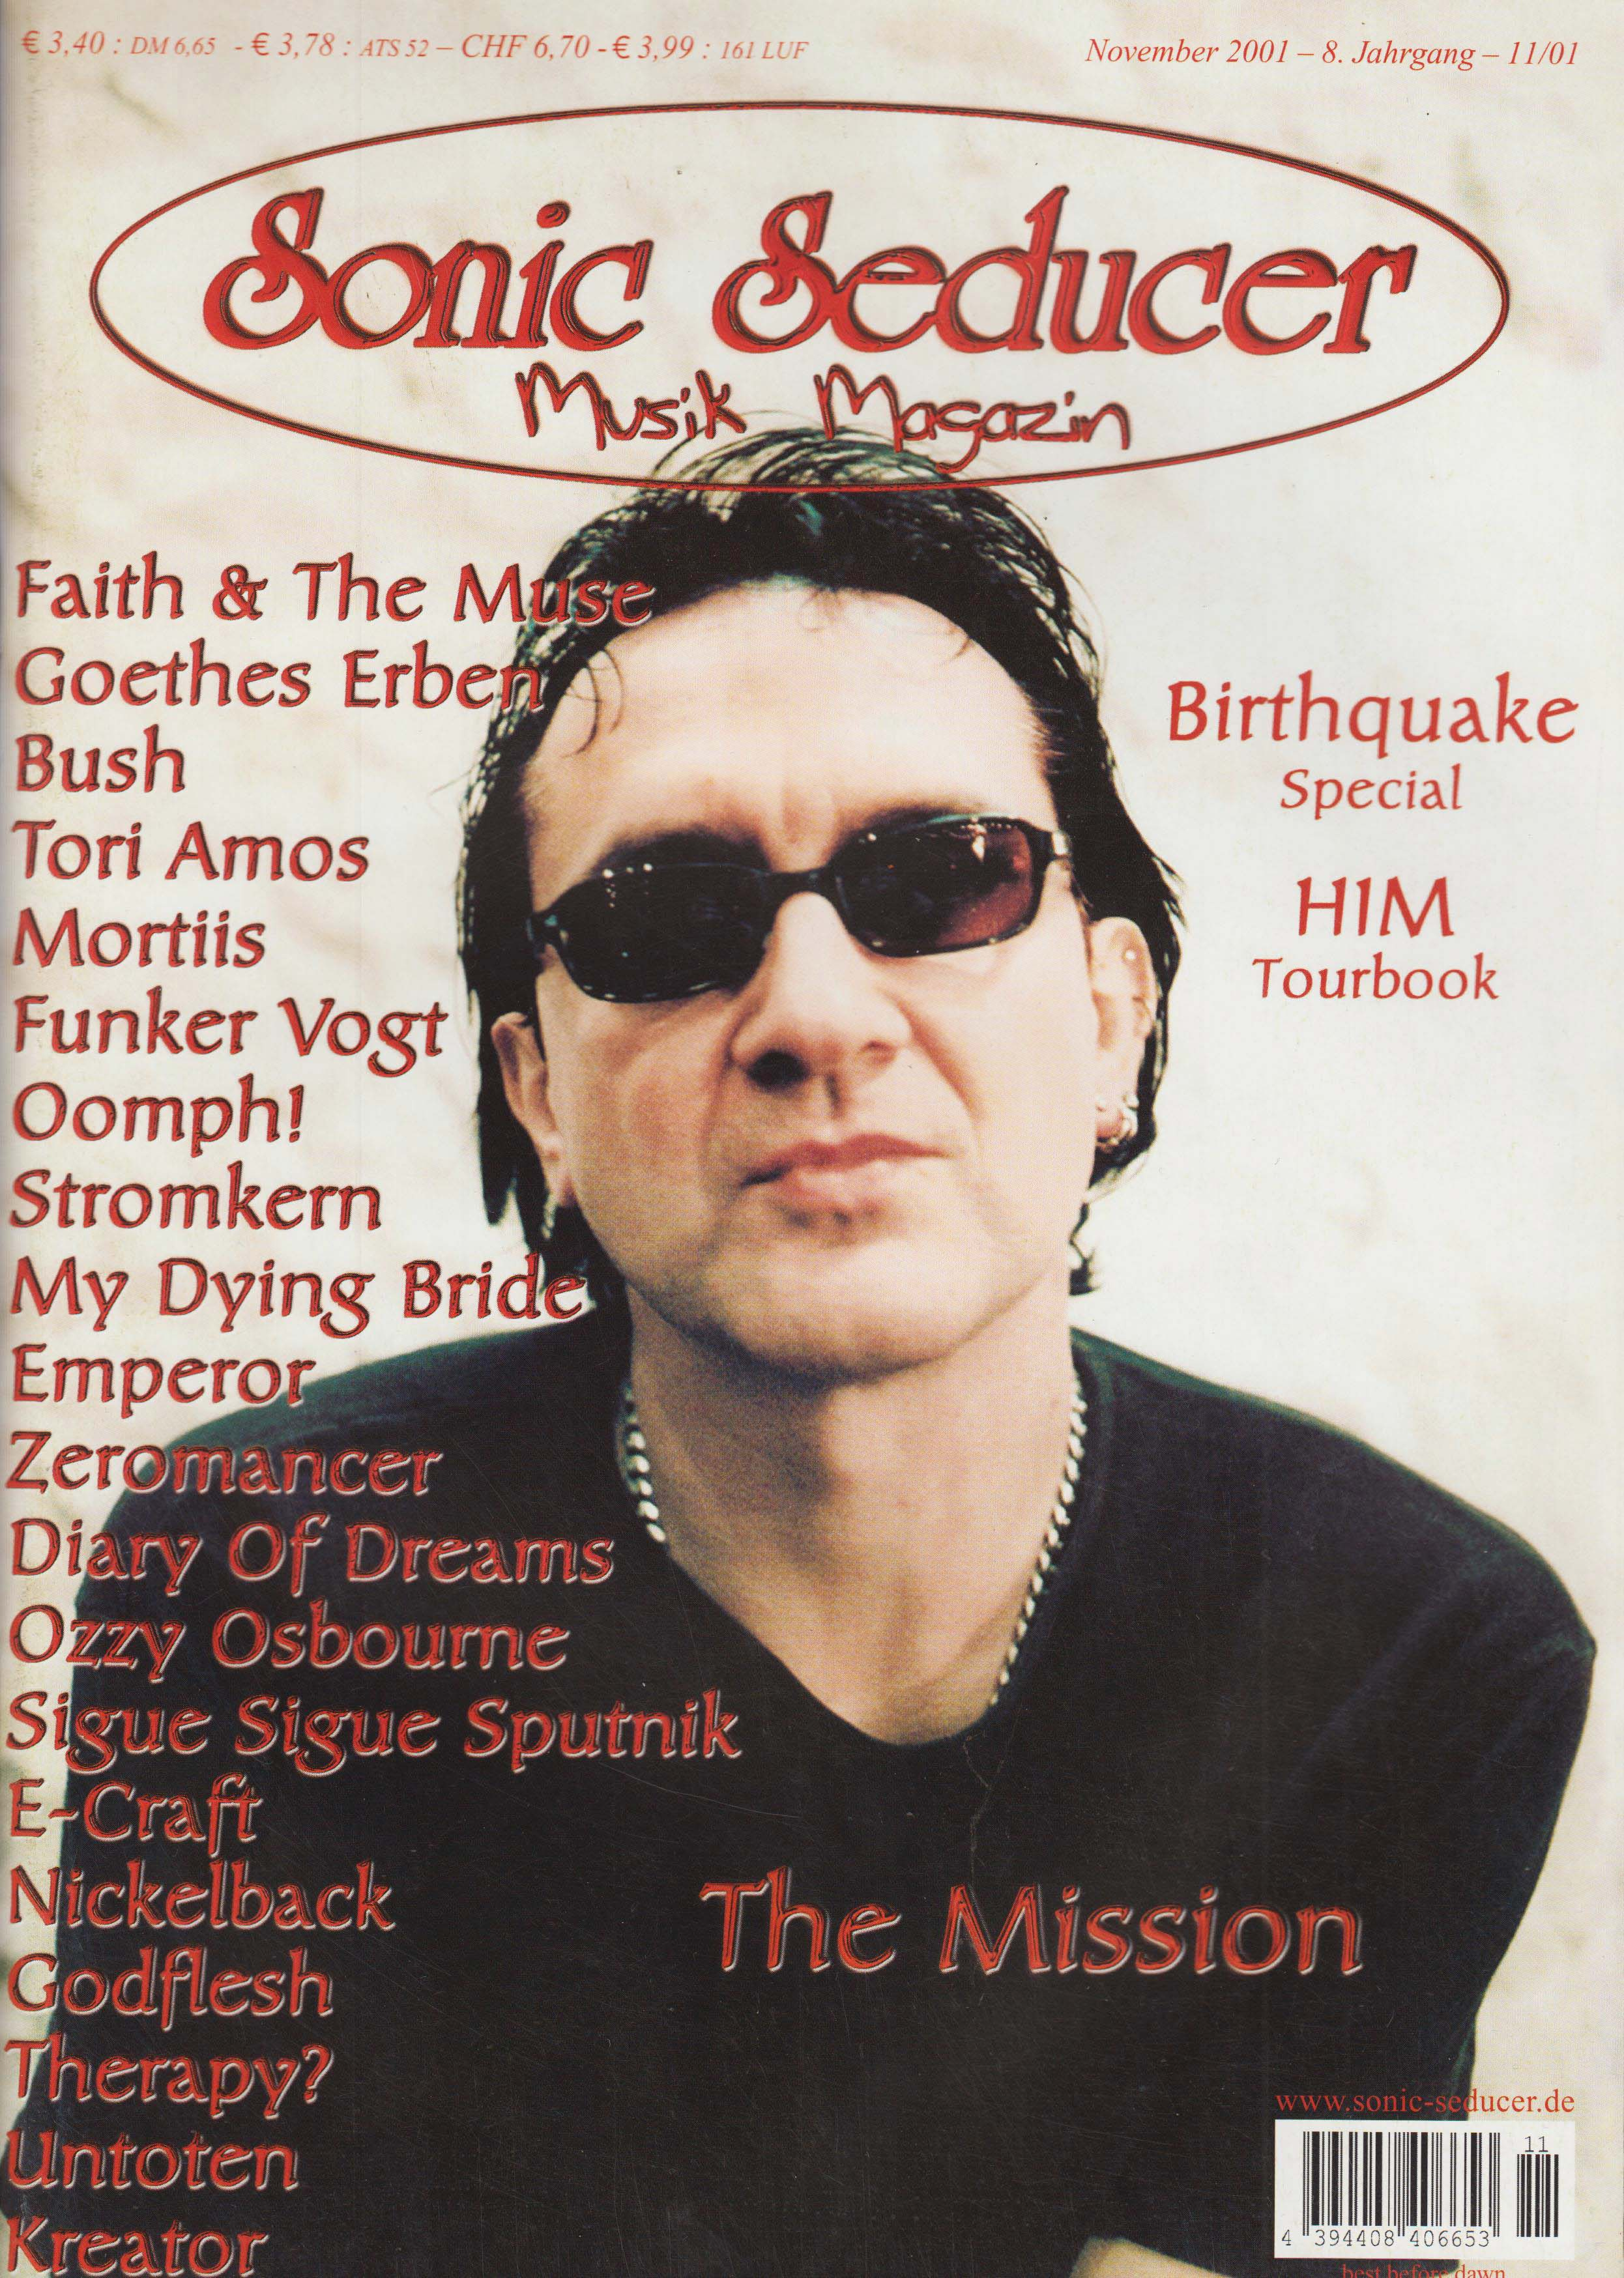 Sonic Seducer 2001-11 mit großer The Mission-Titelstory